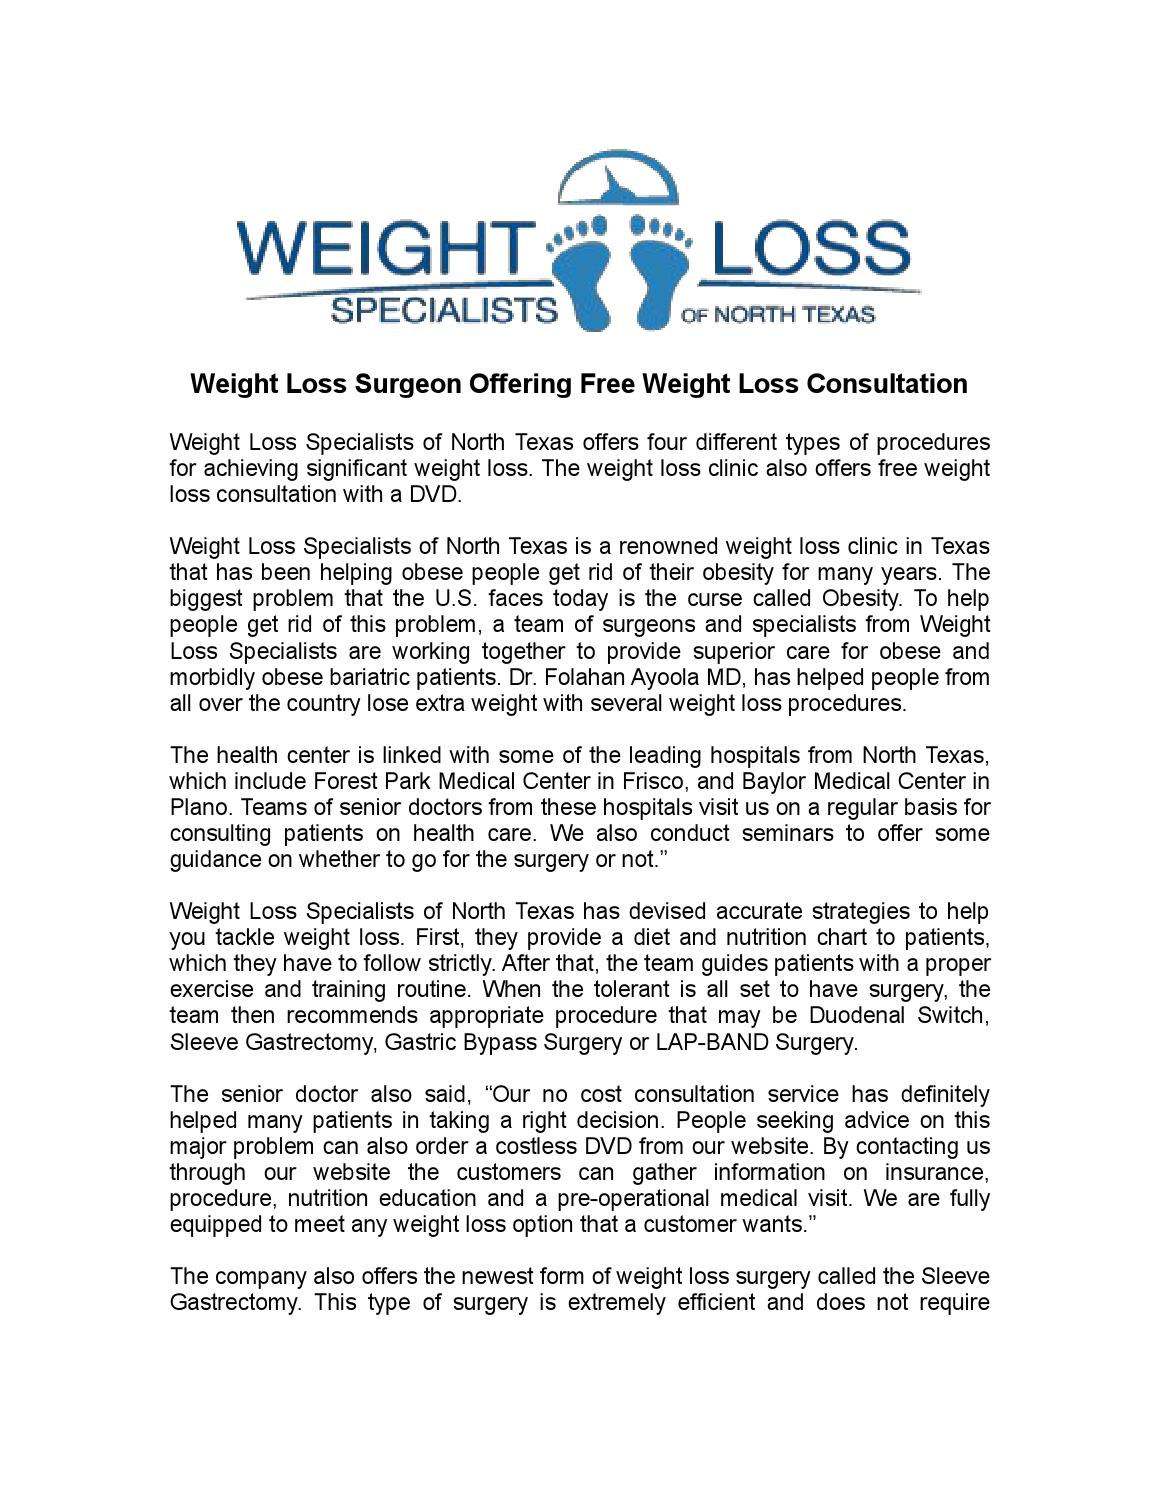 Weight Loss Surgeon Offering Free Weight Loss Consultation By David